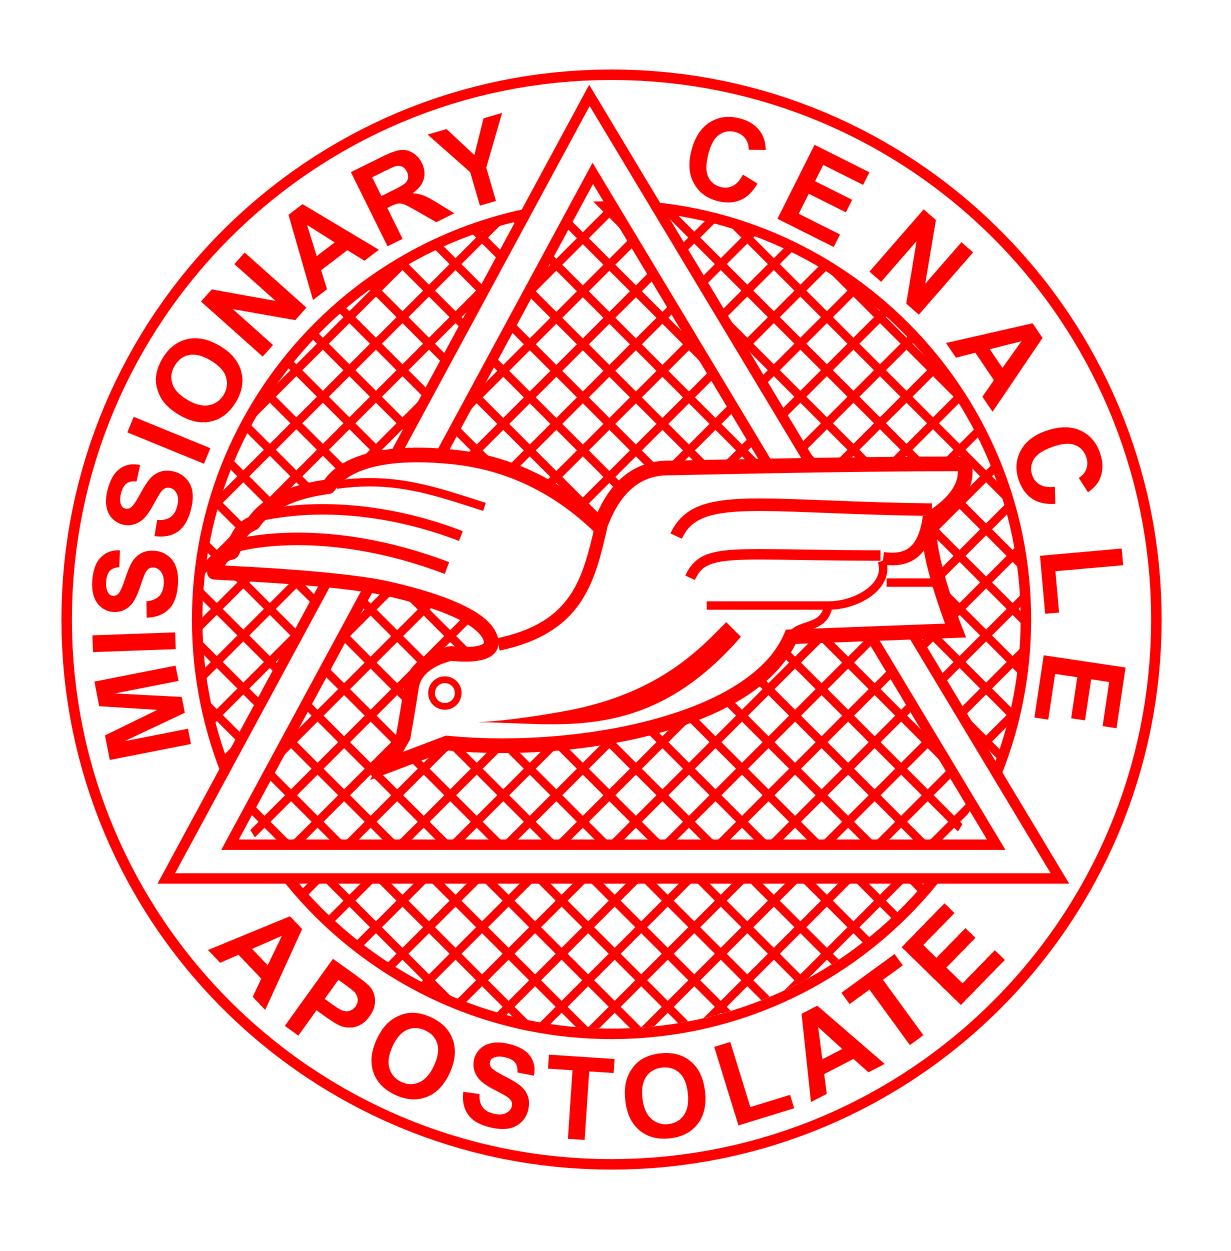 Missionary Cenacle Apostolate